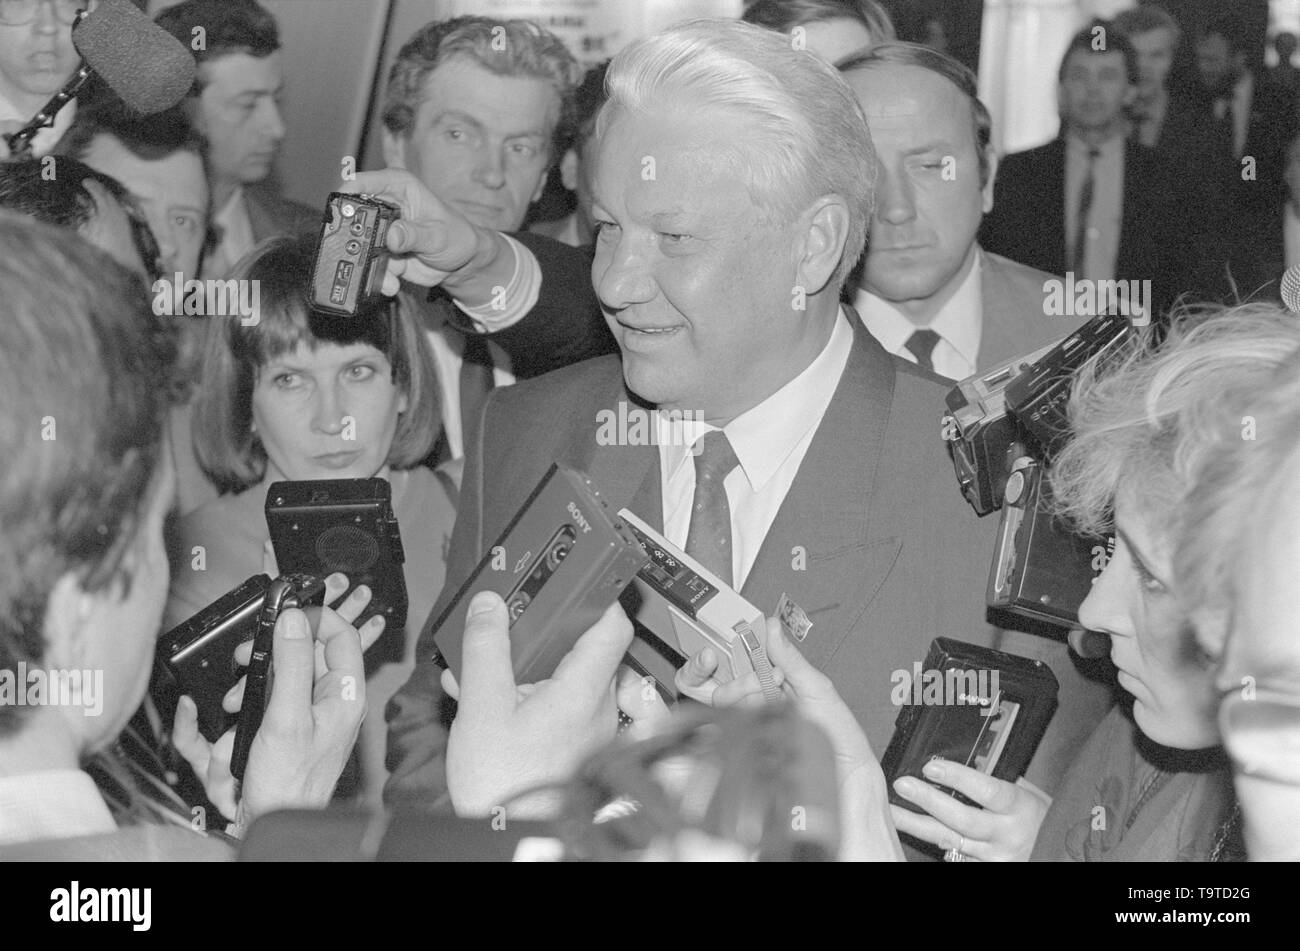 Moscow, Russia - March 28, 1991: Chairman of the Presidium of the Supreme Soviet of RSFSR Boris Nikolayevich Yeltsin talks to correspondents at 3d extraordinary Congress of people's deputies of RSFSR. - Stock Image